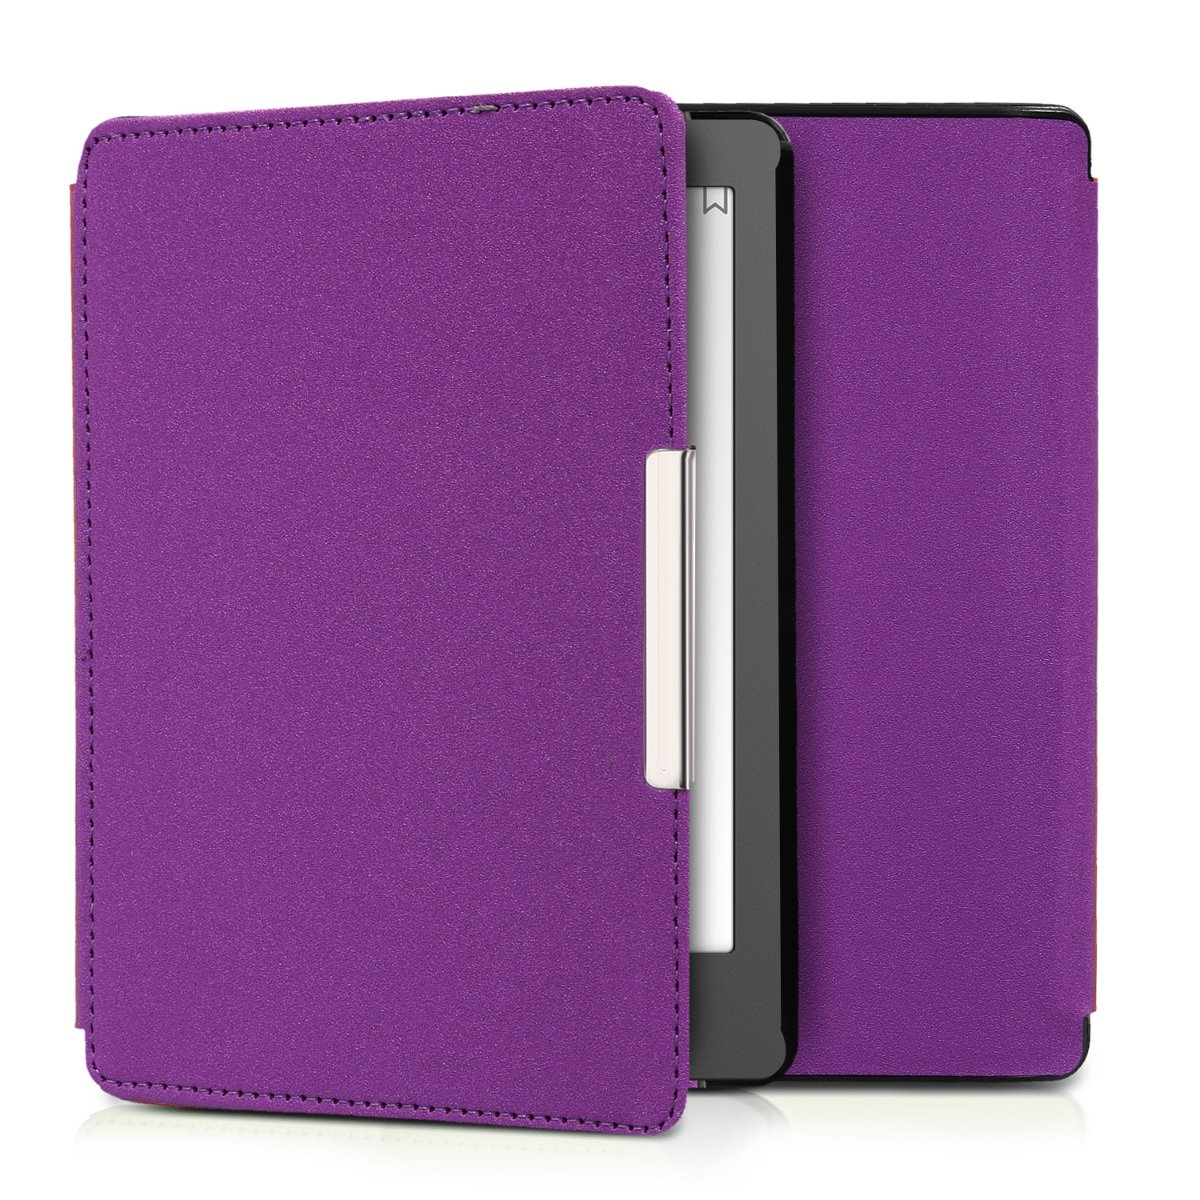 kwmobile Flip cover case for Kobo Aura Edition 2 - imitation leather foldable case in violet